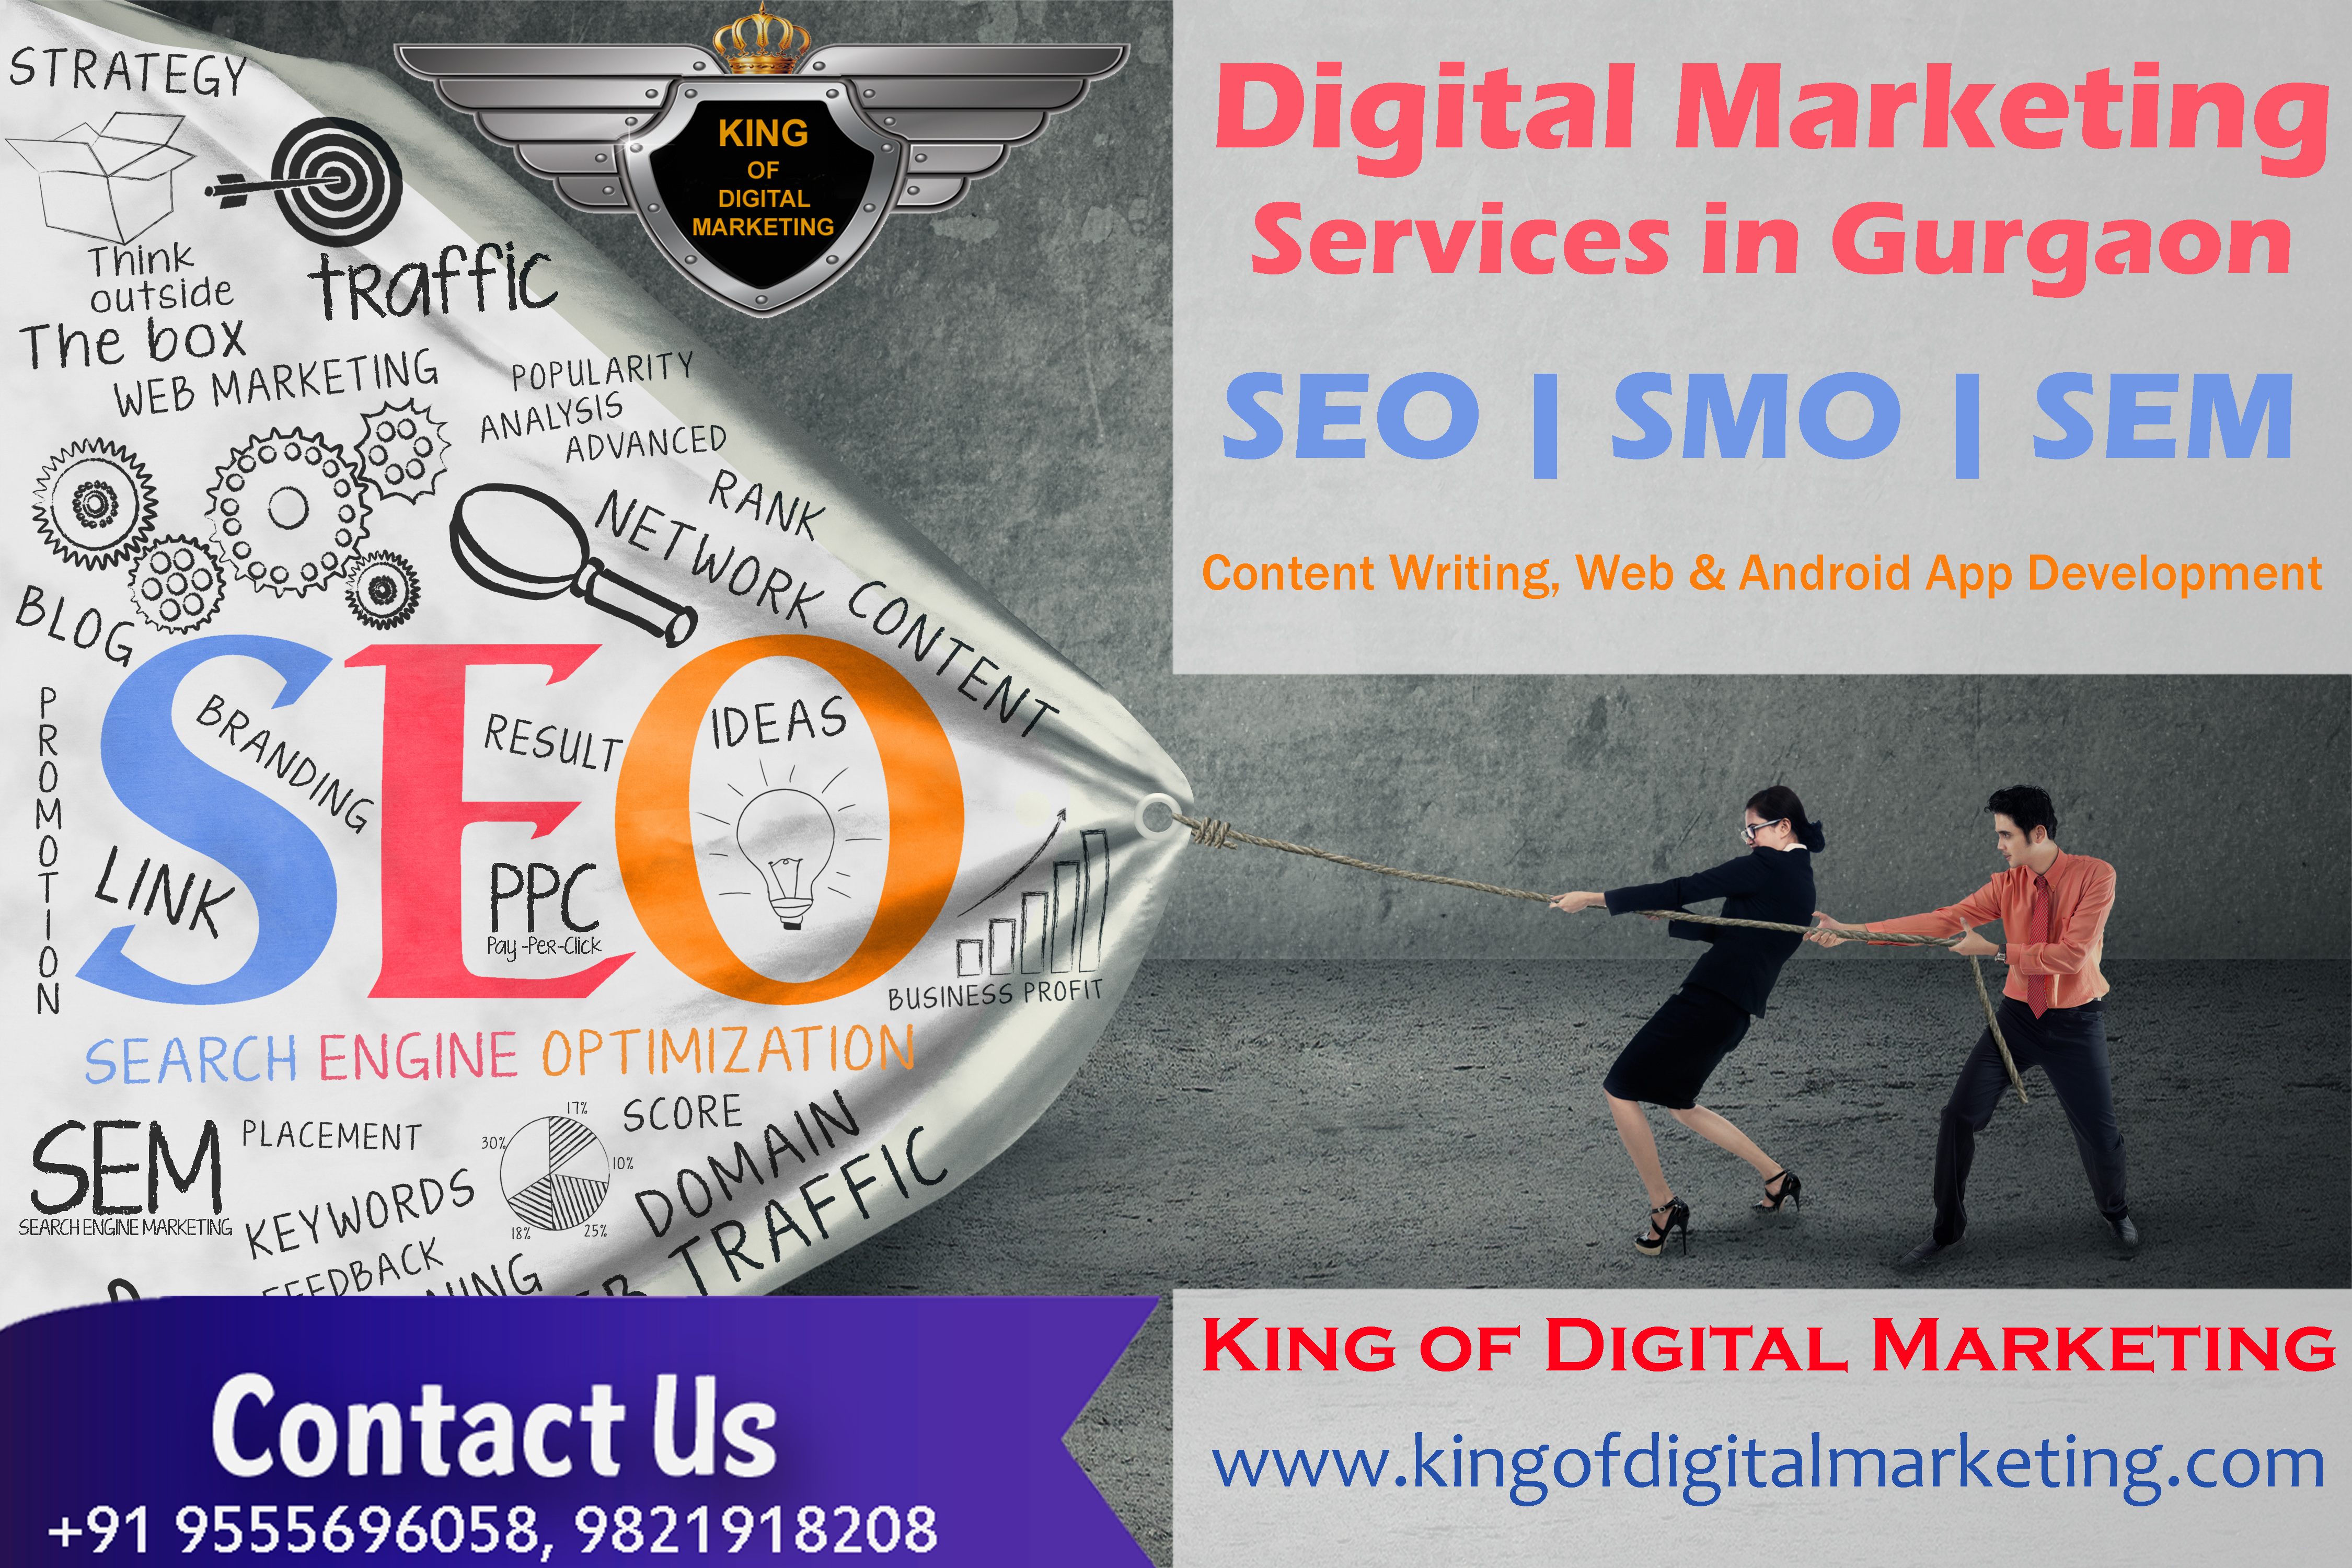 SEO Services in Gurgaon (Delhi NCR)